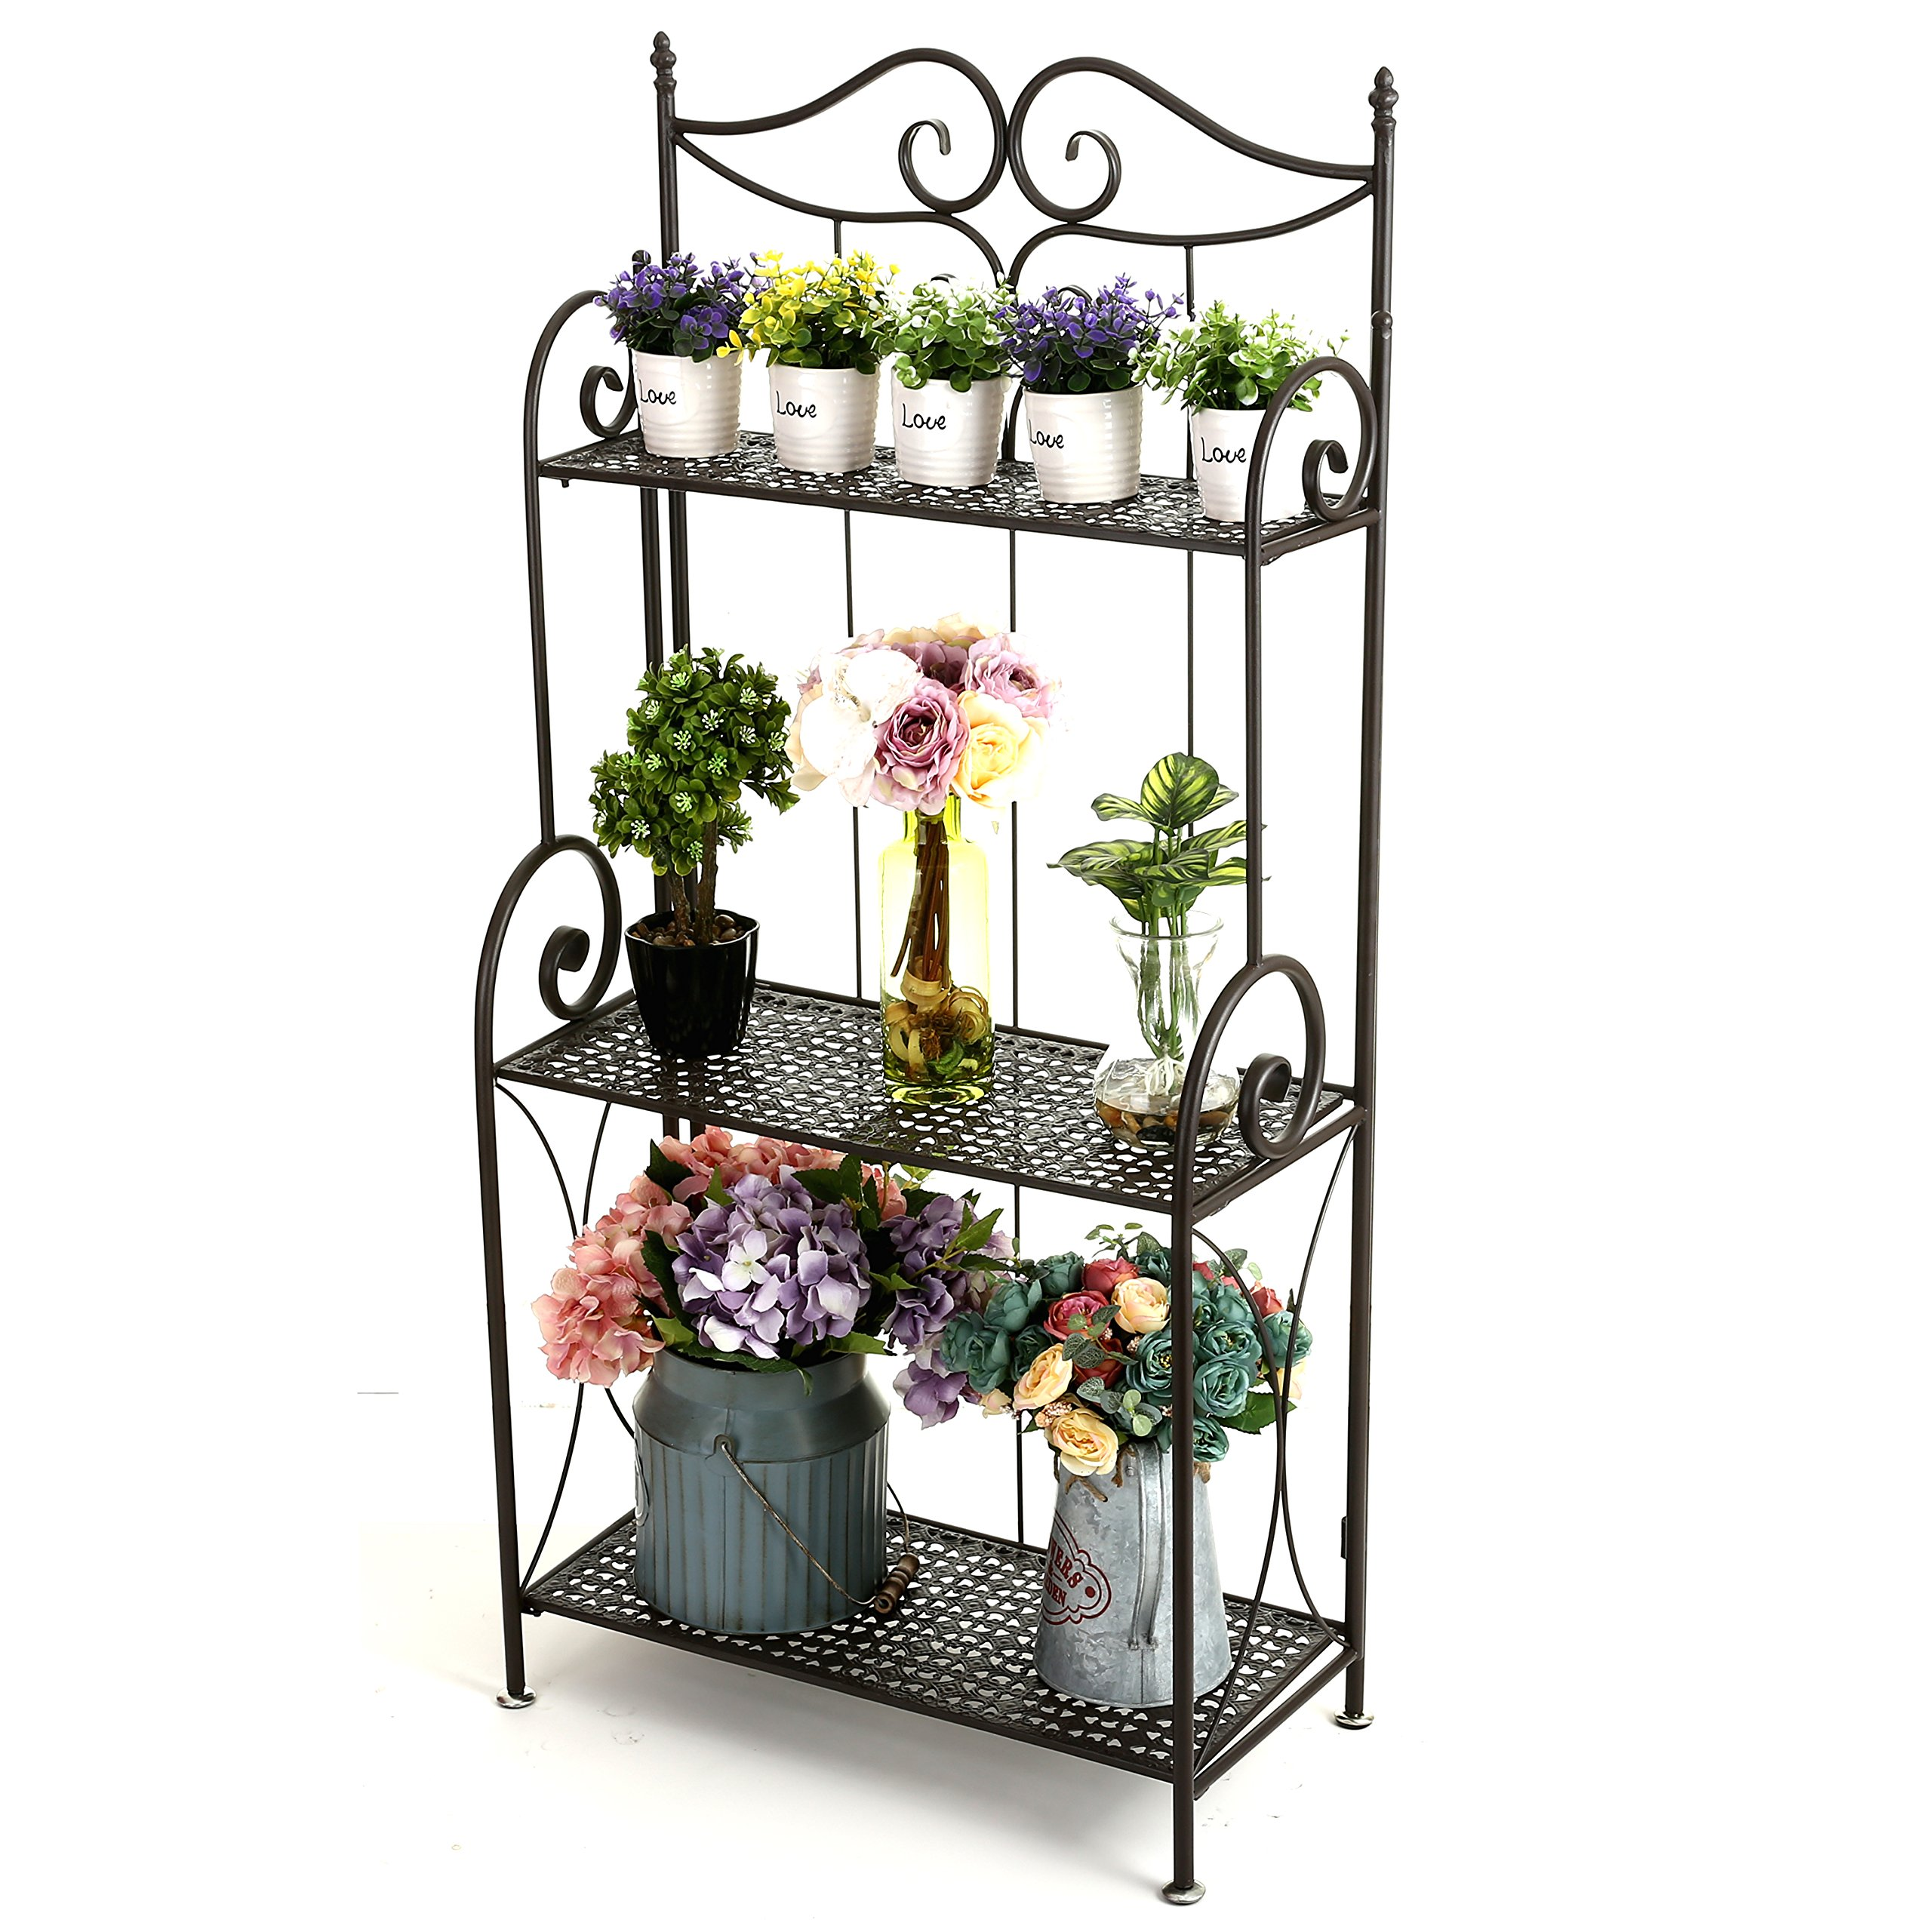 Scrollwork Design Metal Foldable 3-Tier Plant & Home Décor Display Stand Rack/Book Shelf by MyGift